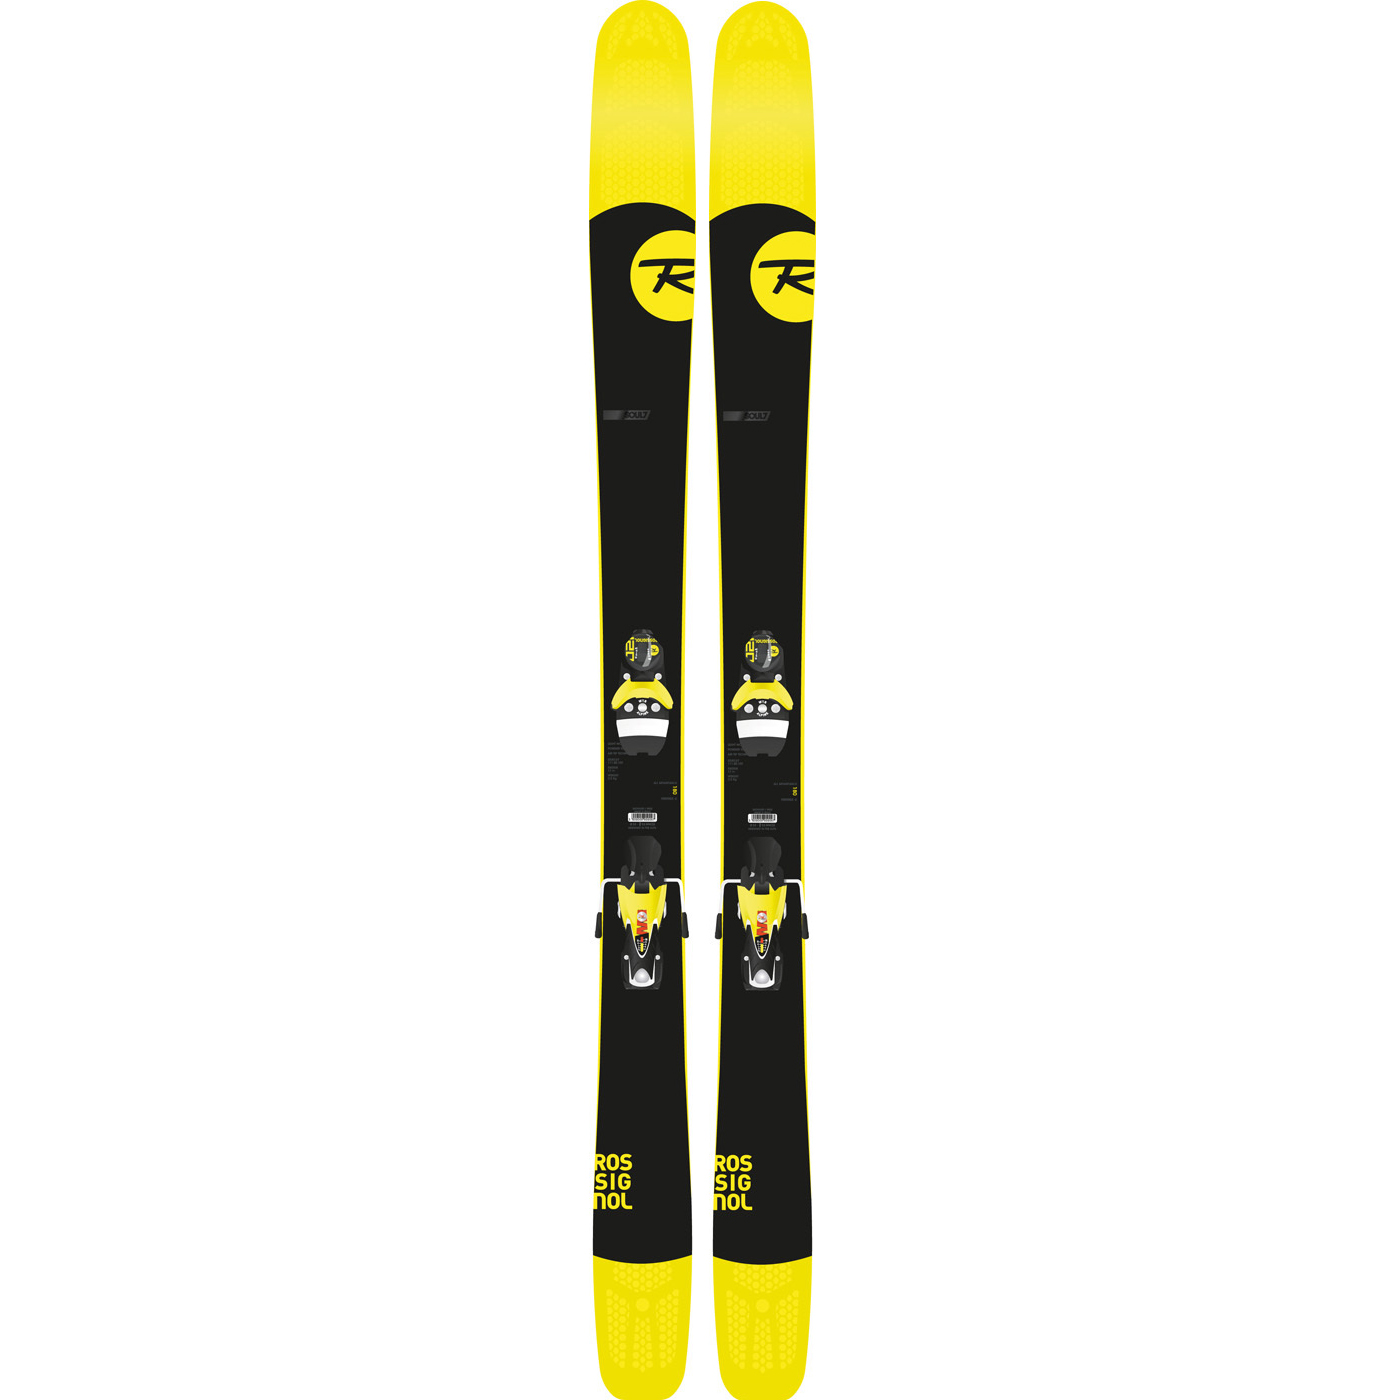 Rossignol Soul 7, Freeride Skis, Winter 2015/16, Axial 3